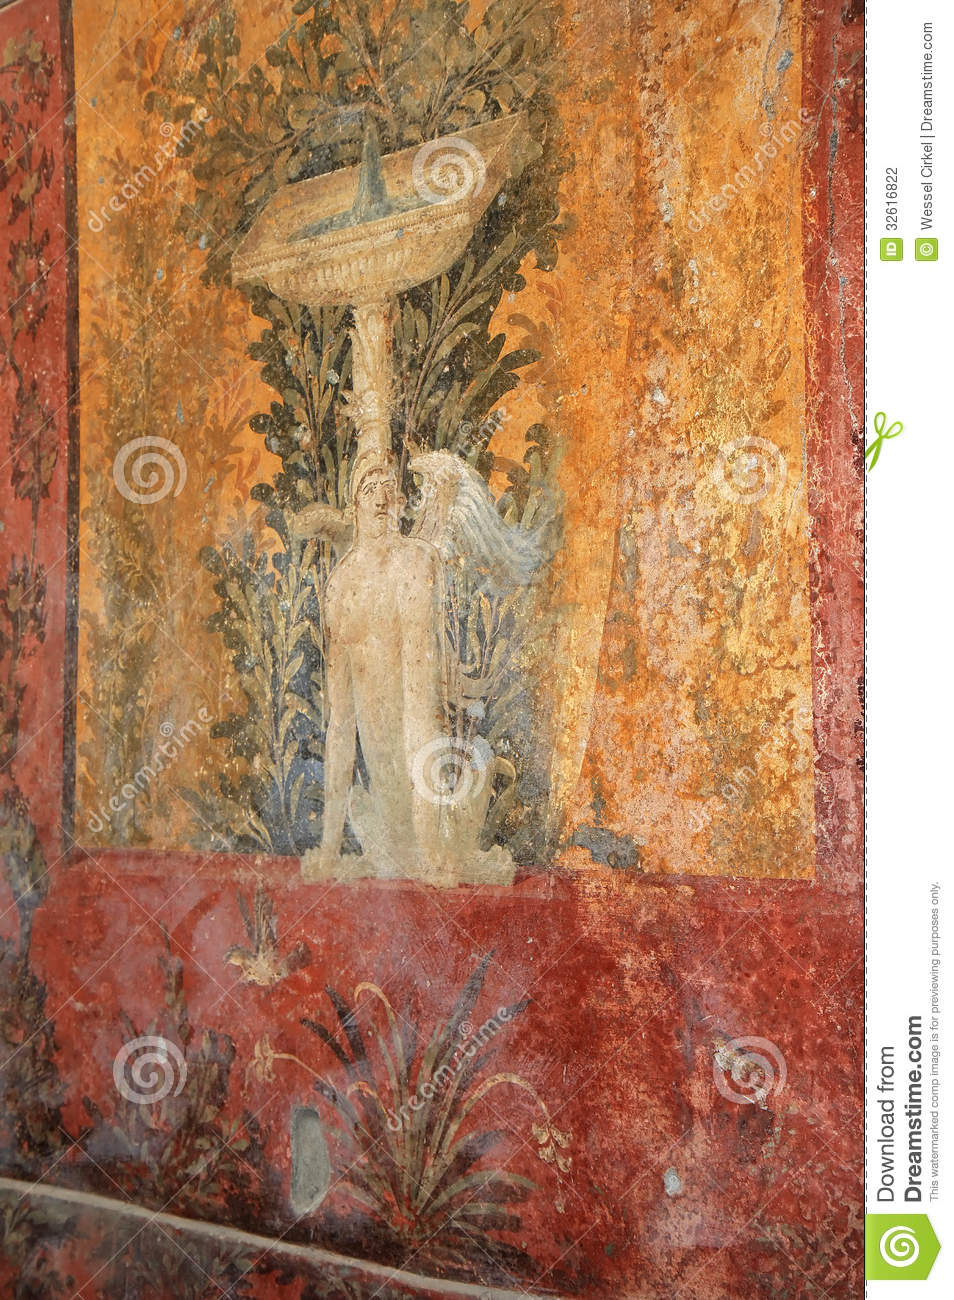 Fountain mural in the roman villa poppaea italy stock for Ancient roman mural